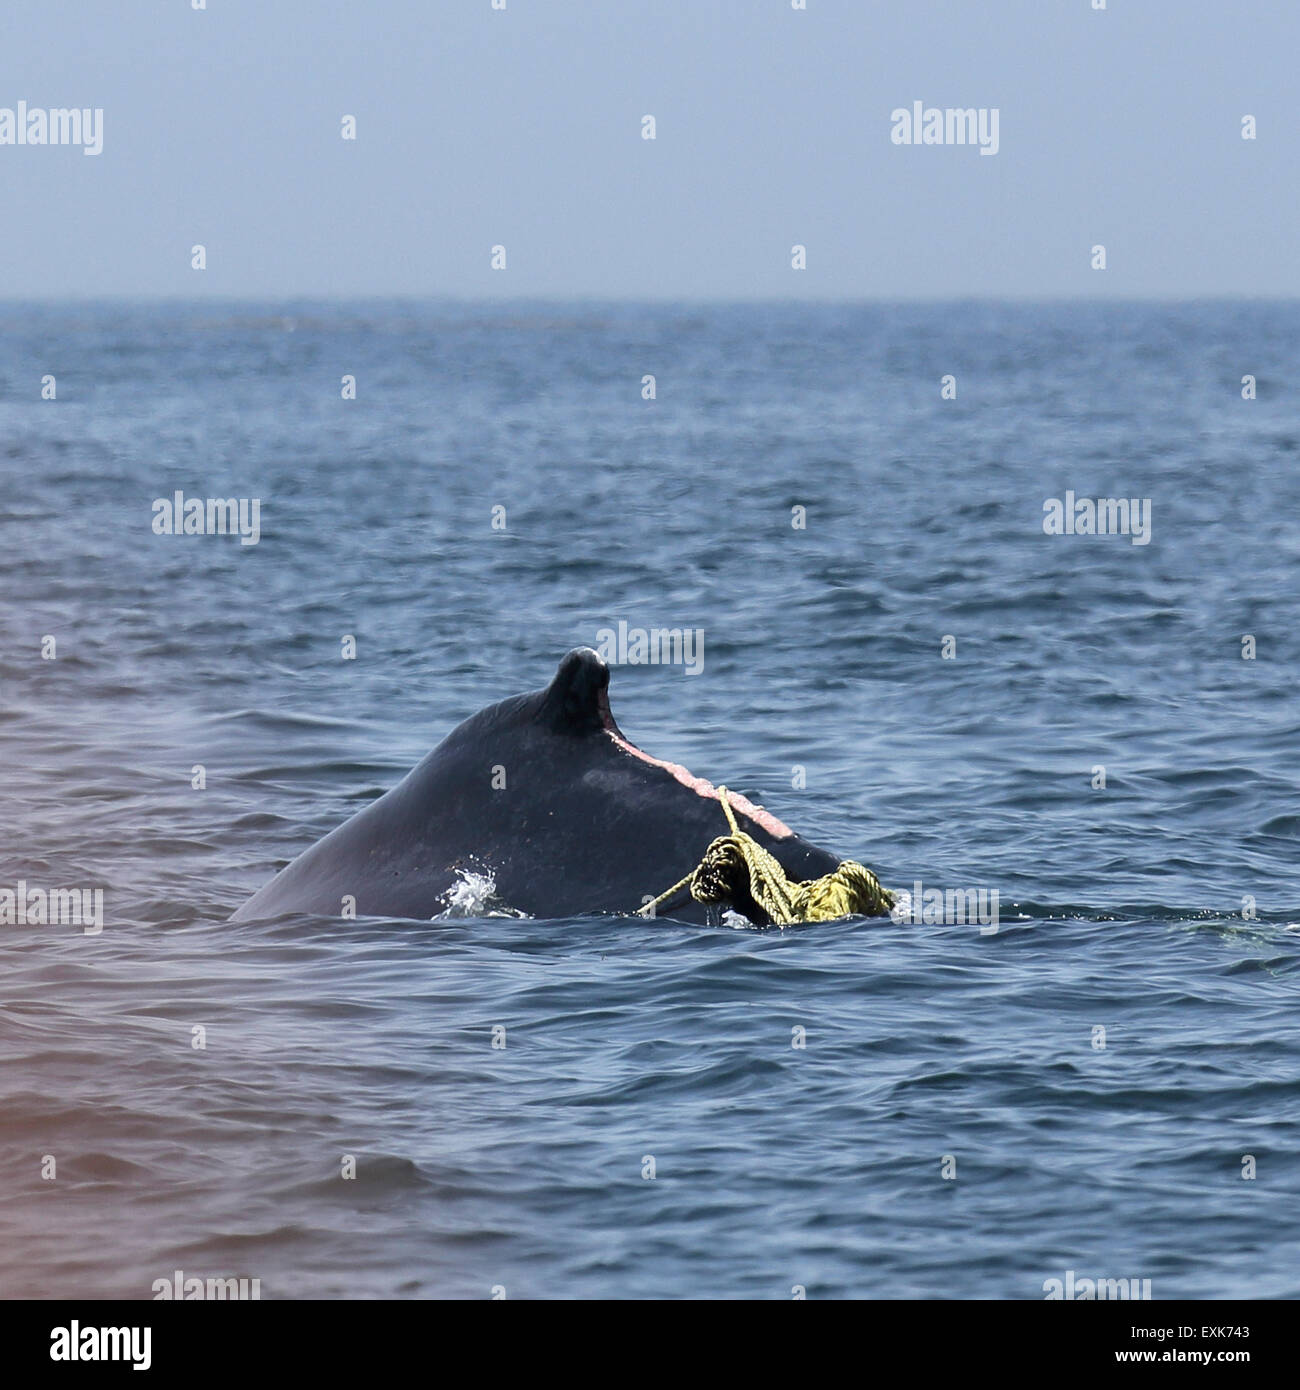 Nova Scotia, Canada. 14th July, 2015. An injured humpback whale (Megaptera novaeangliae) in the Bay of Fundy off - Stock Image